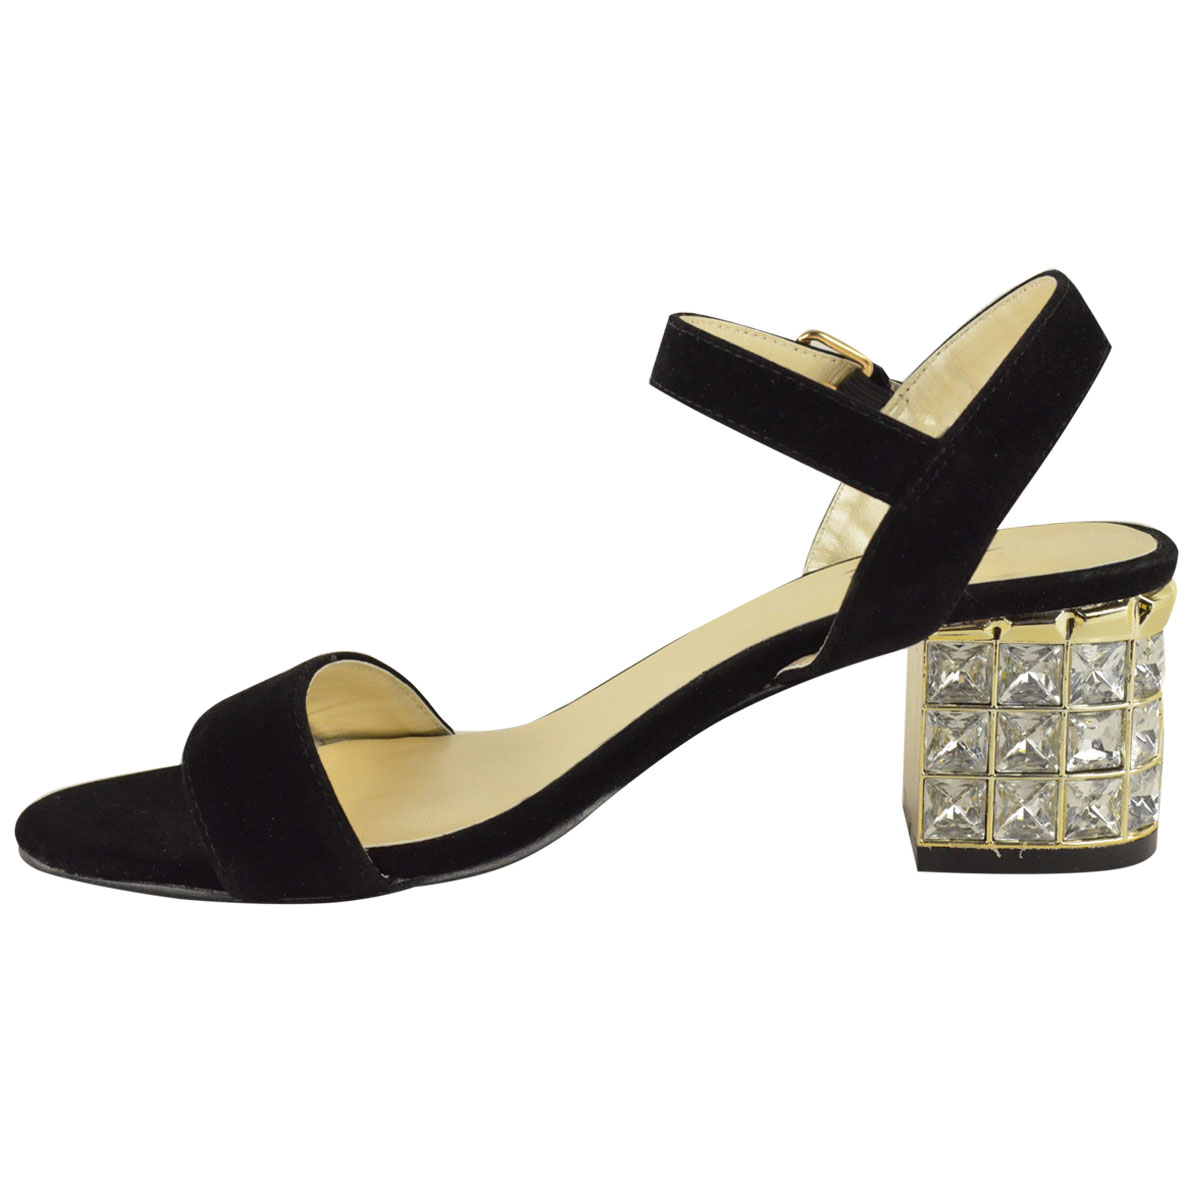 Free shipping BOTH ways on womens low heel sandals, from our vast selection of styles. Fast delivery, and 24/7/ real-person service with a smile. Click or call